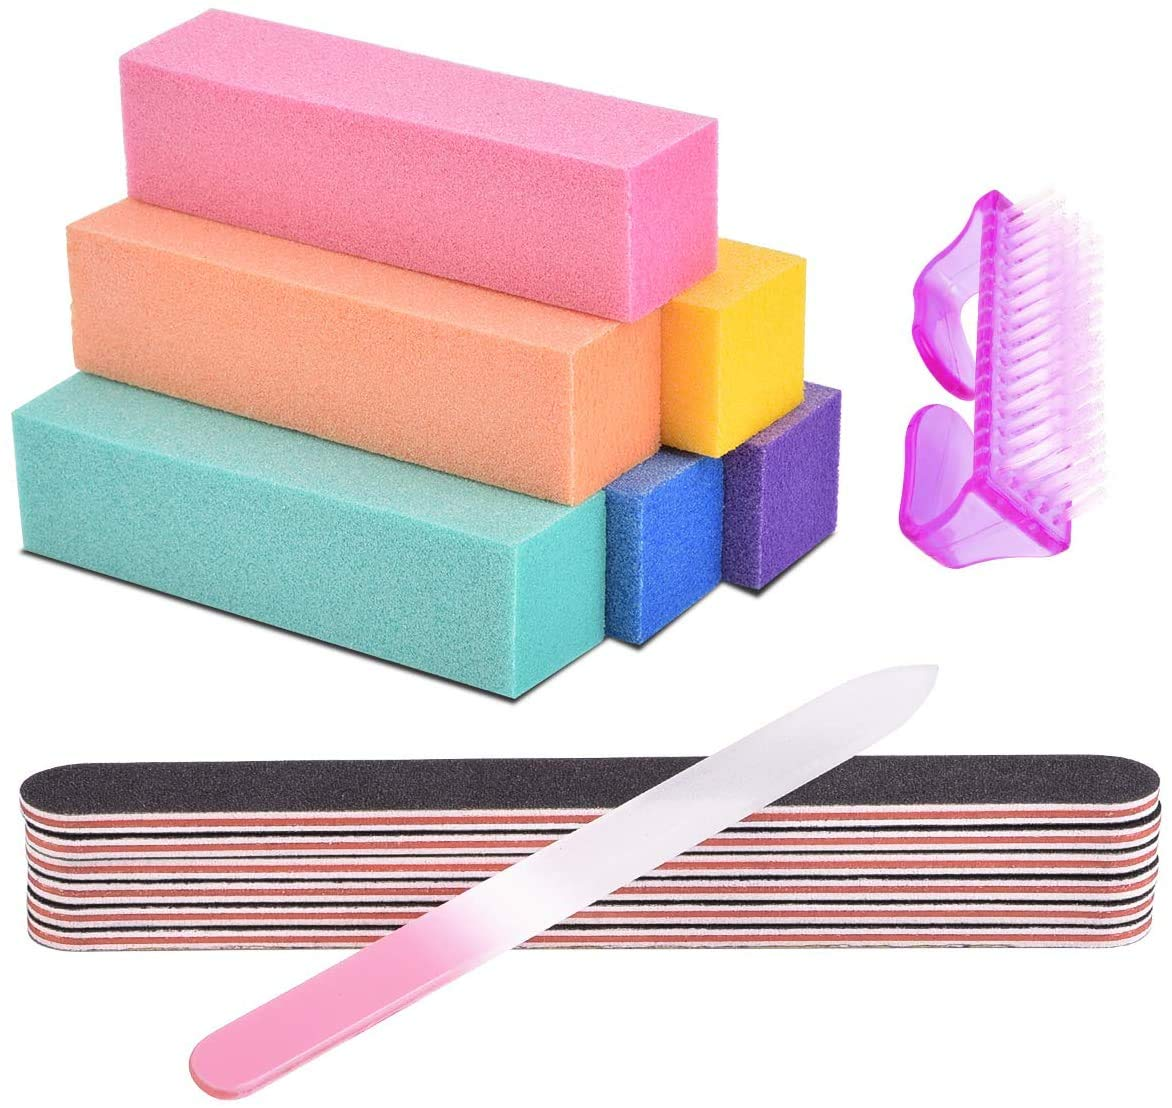 AIRSEE 14 Professional Nail Files and Buffers - Manicure Tools Kit Rectangular Nail Art Care Buffer Block Emery Boards Shine Kit for Natural, Gel, Acrylic Nails Nail Filer for Salon and Home Use : Beauty